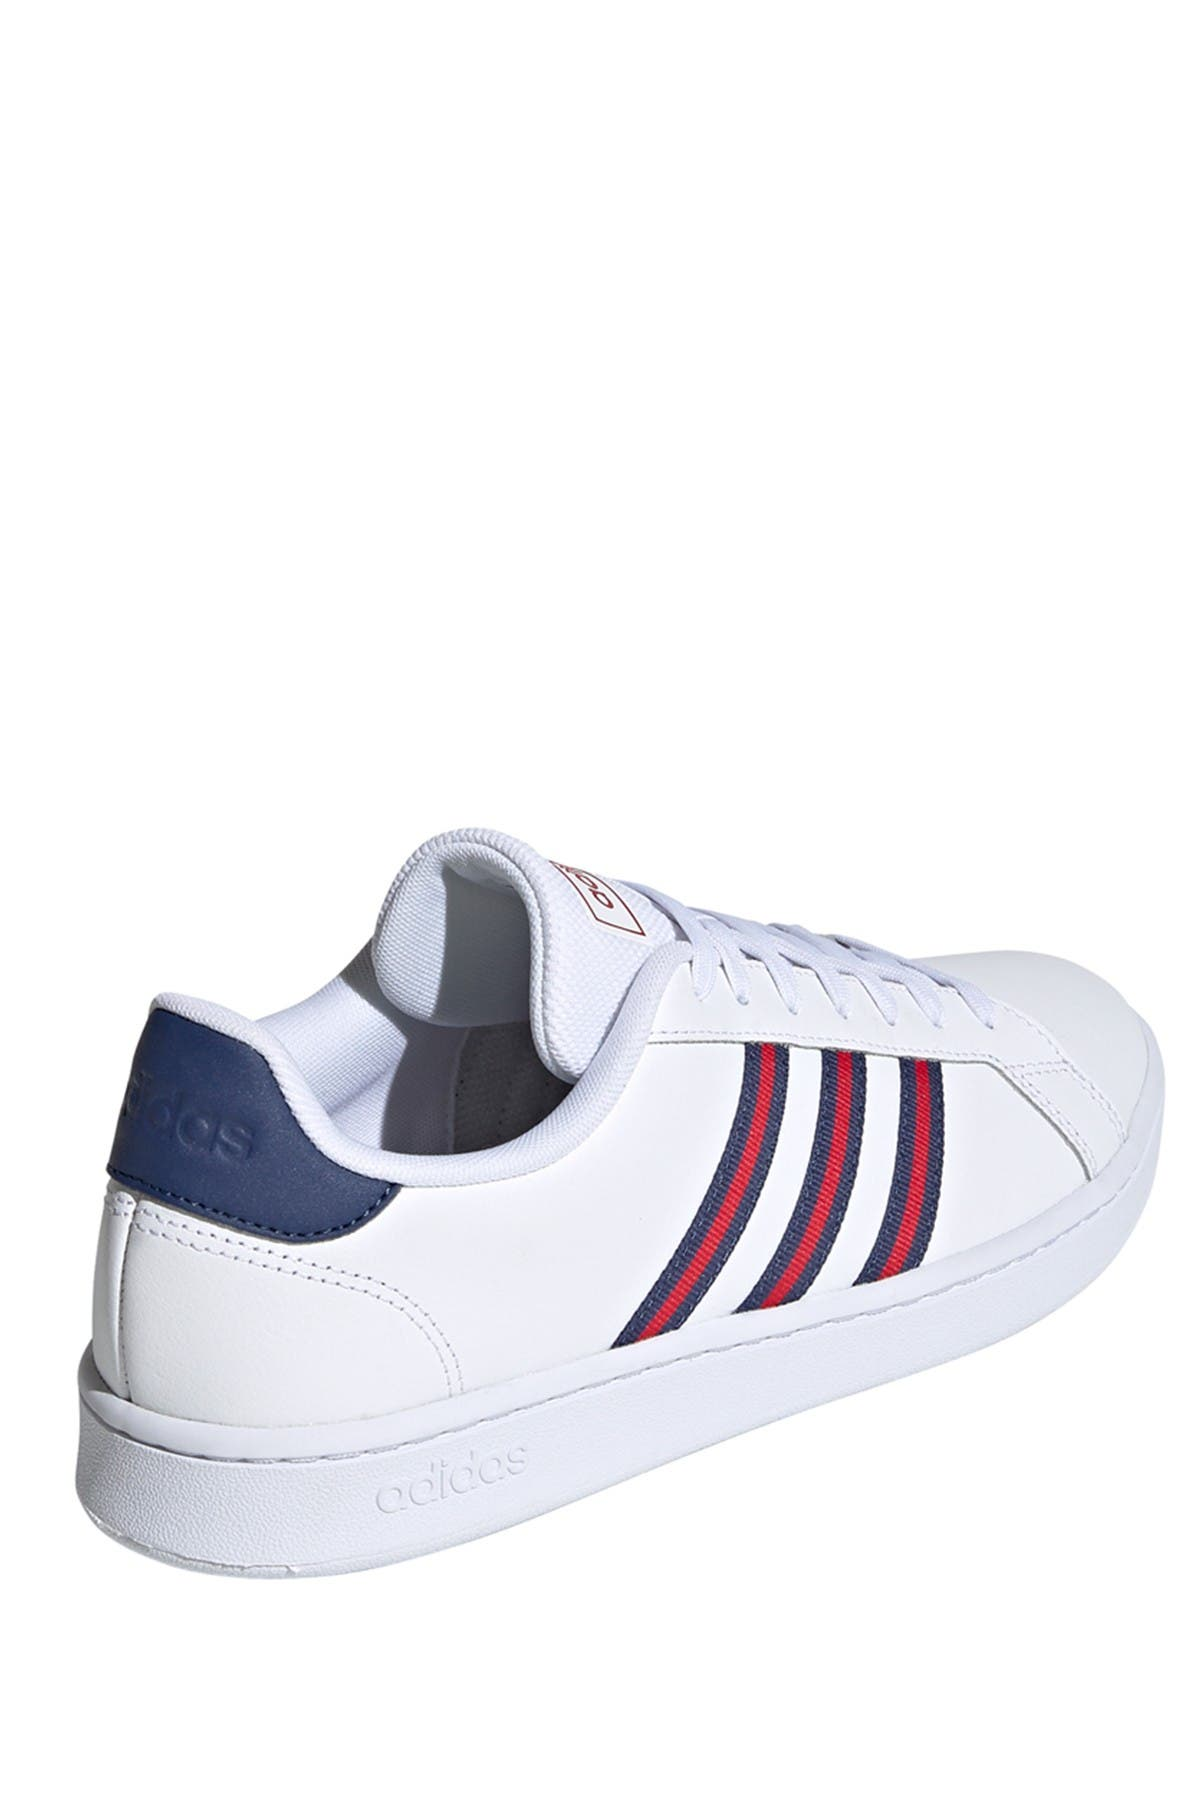 Image of adidas Grand Court Tennis Sneaker